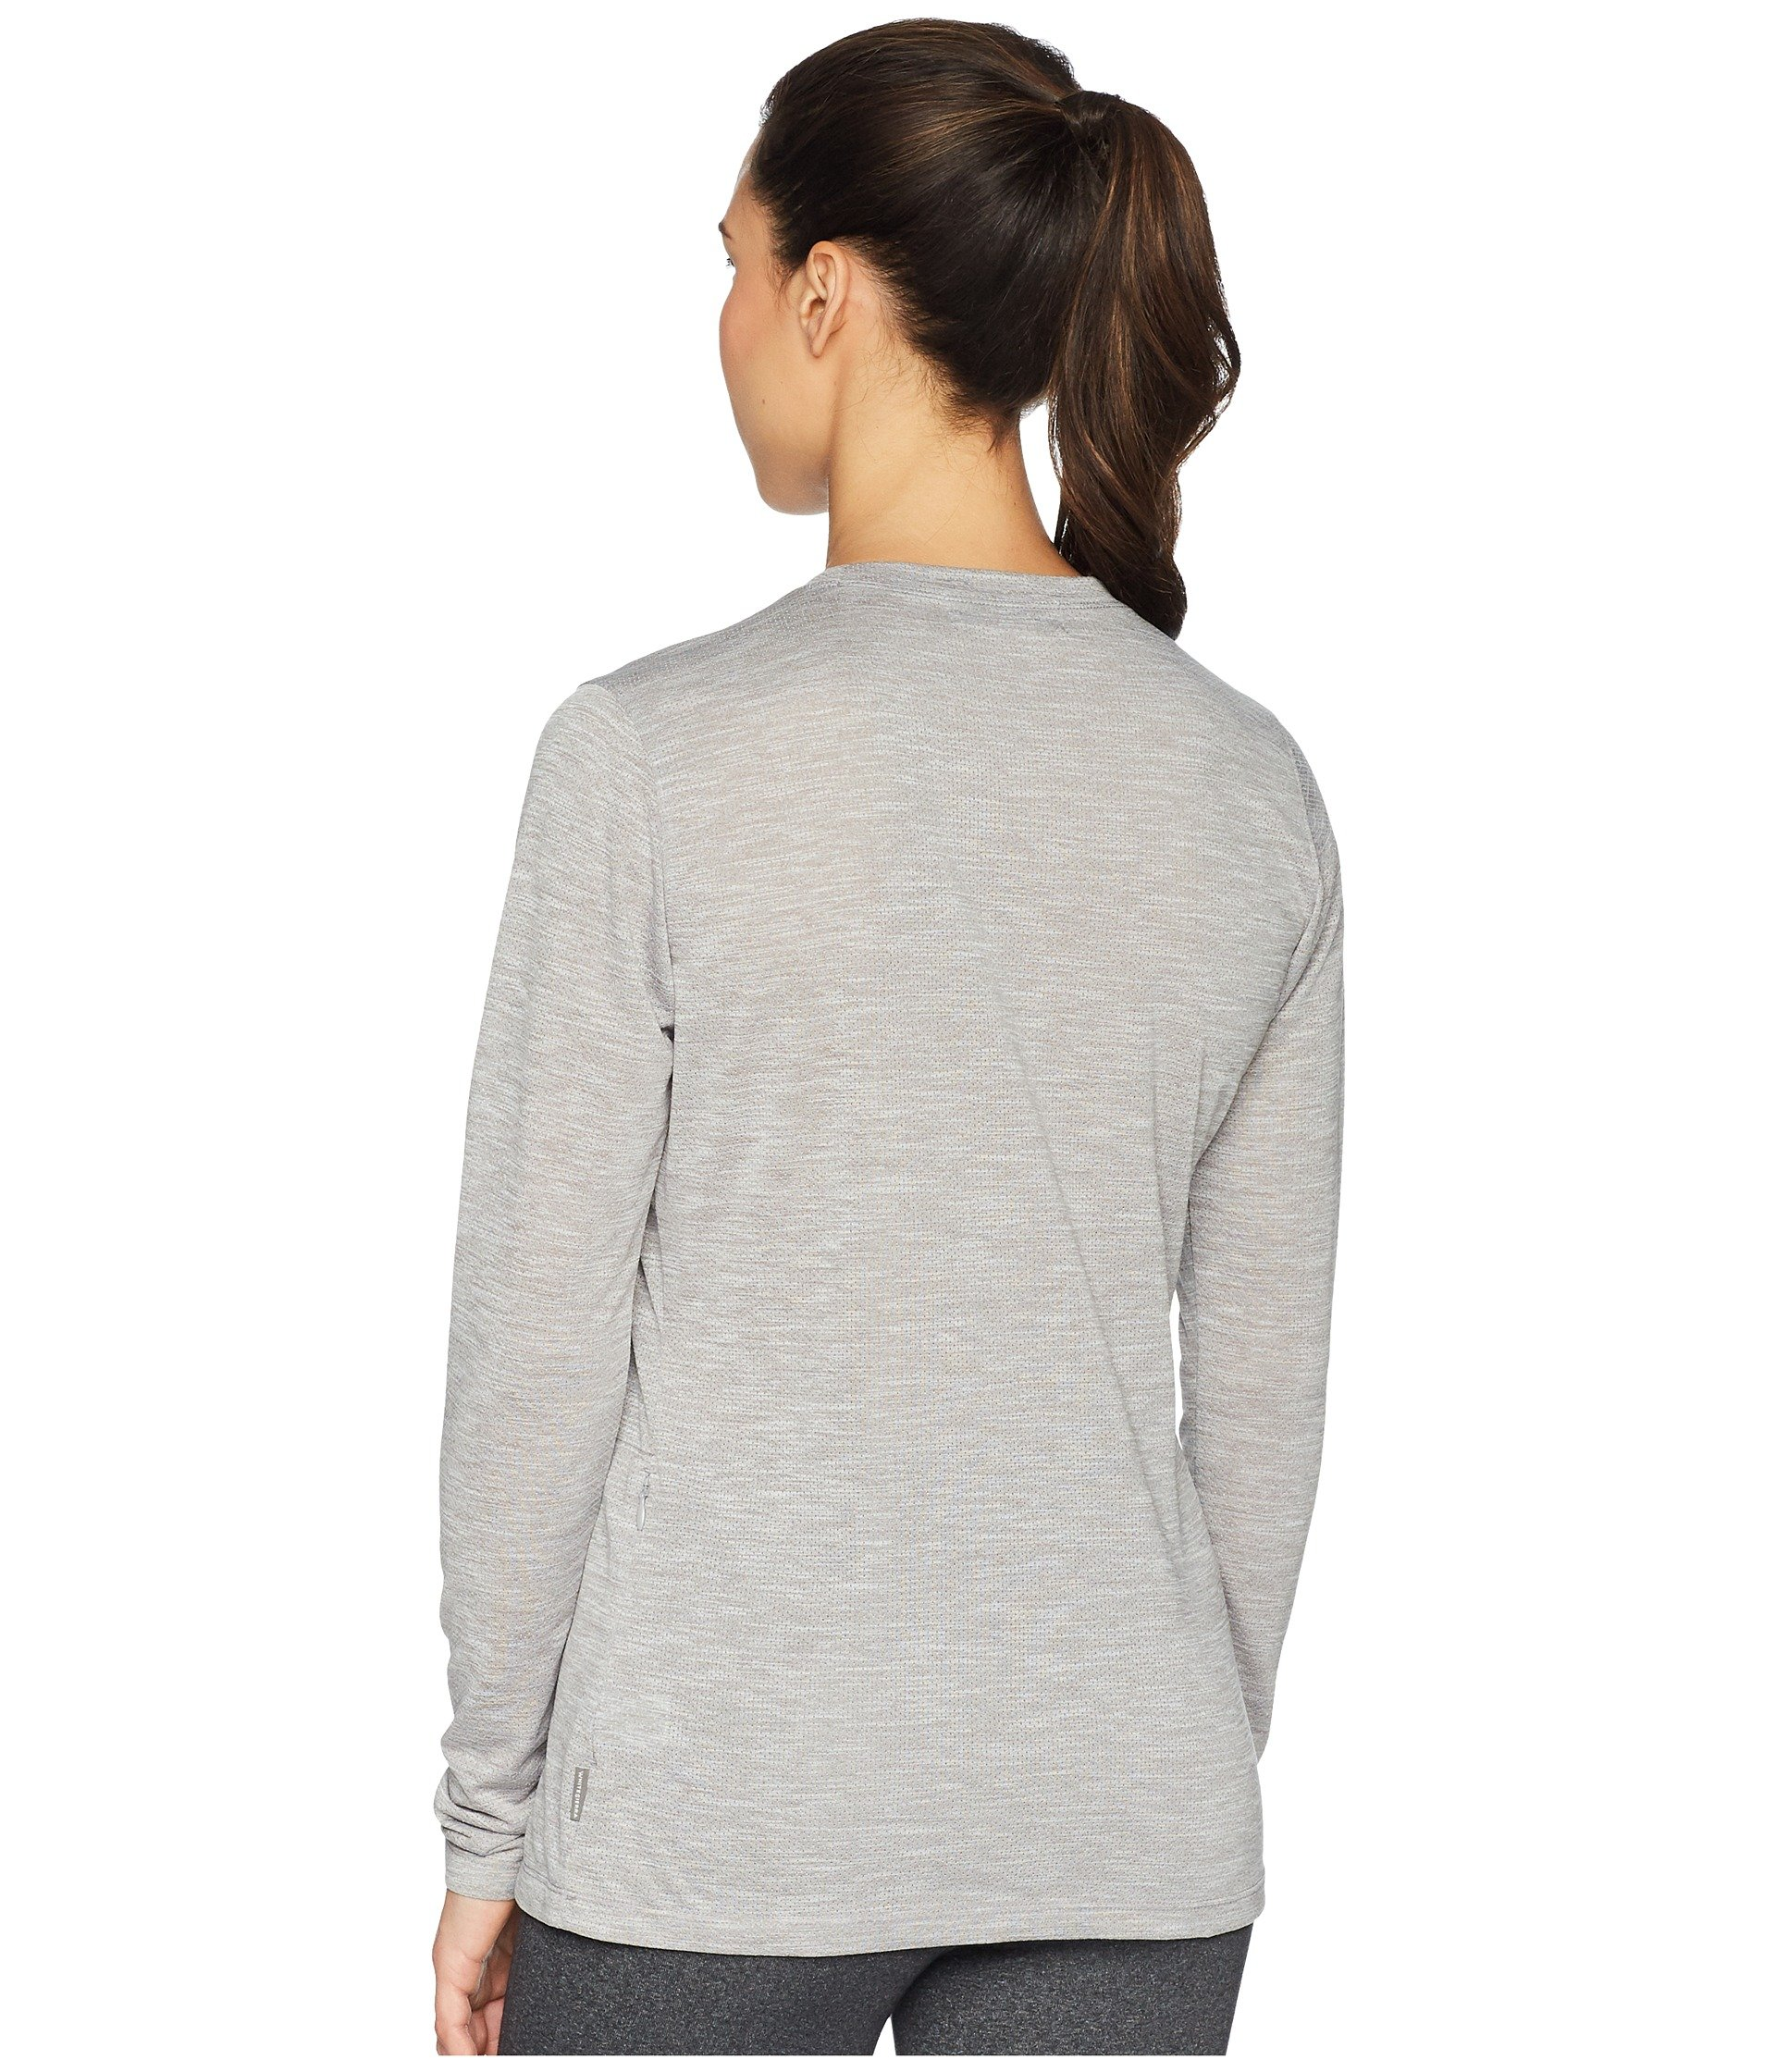 Sierra Tee Sleeve Long Bug White Free Trail Heather Gray dURq7Uvw